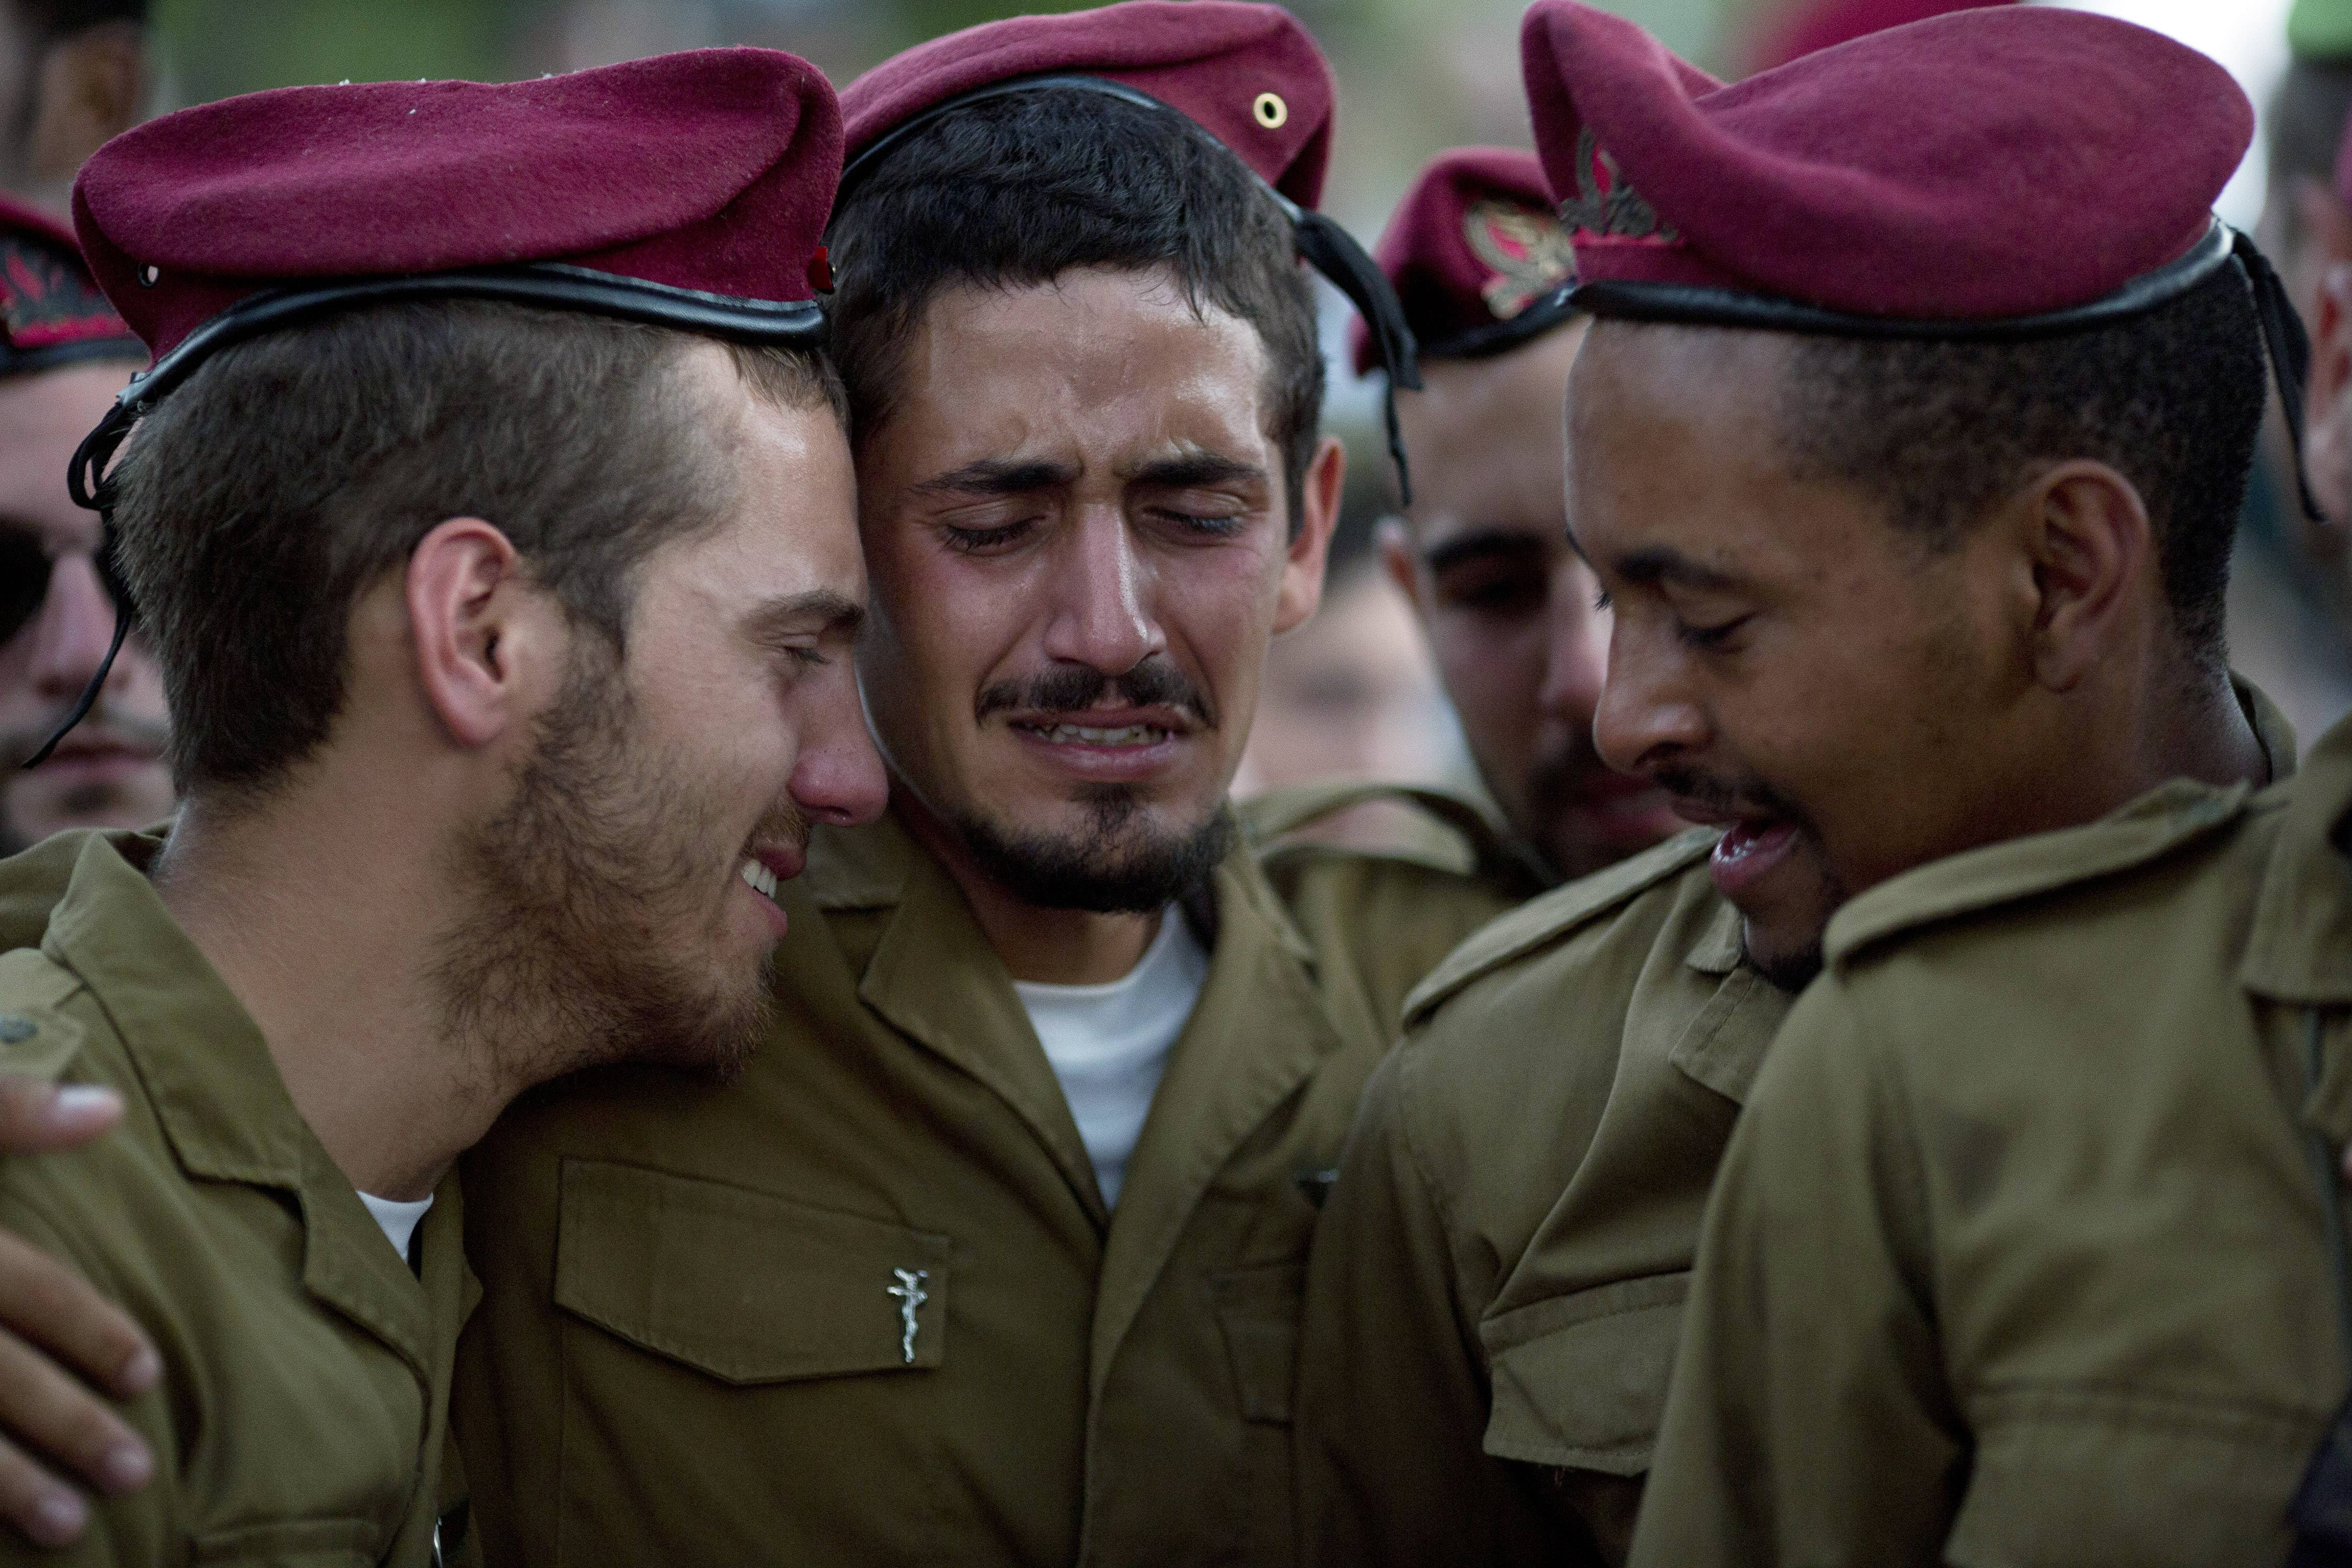 Israeli soldiers mourn over the grave of Sgt. Bnaya Rubel during his funeral at the military cemetery in Holon, Israel, Sunday. Rubel was killed while fighting Palestinian militants in Gaza on Saturday.